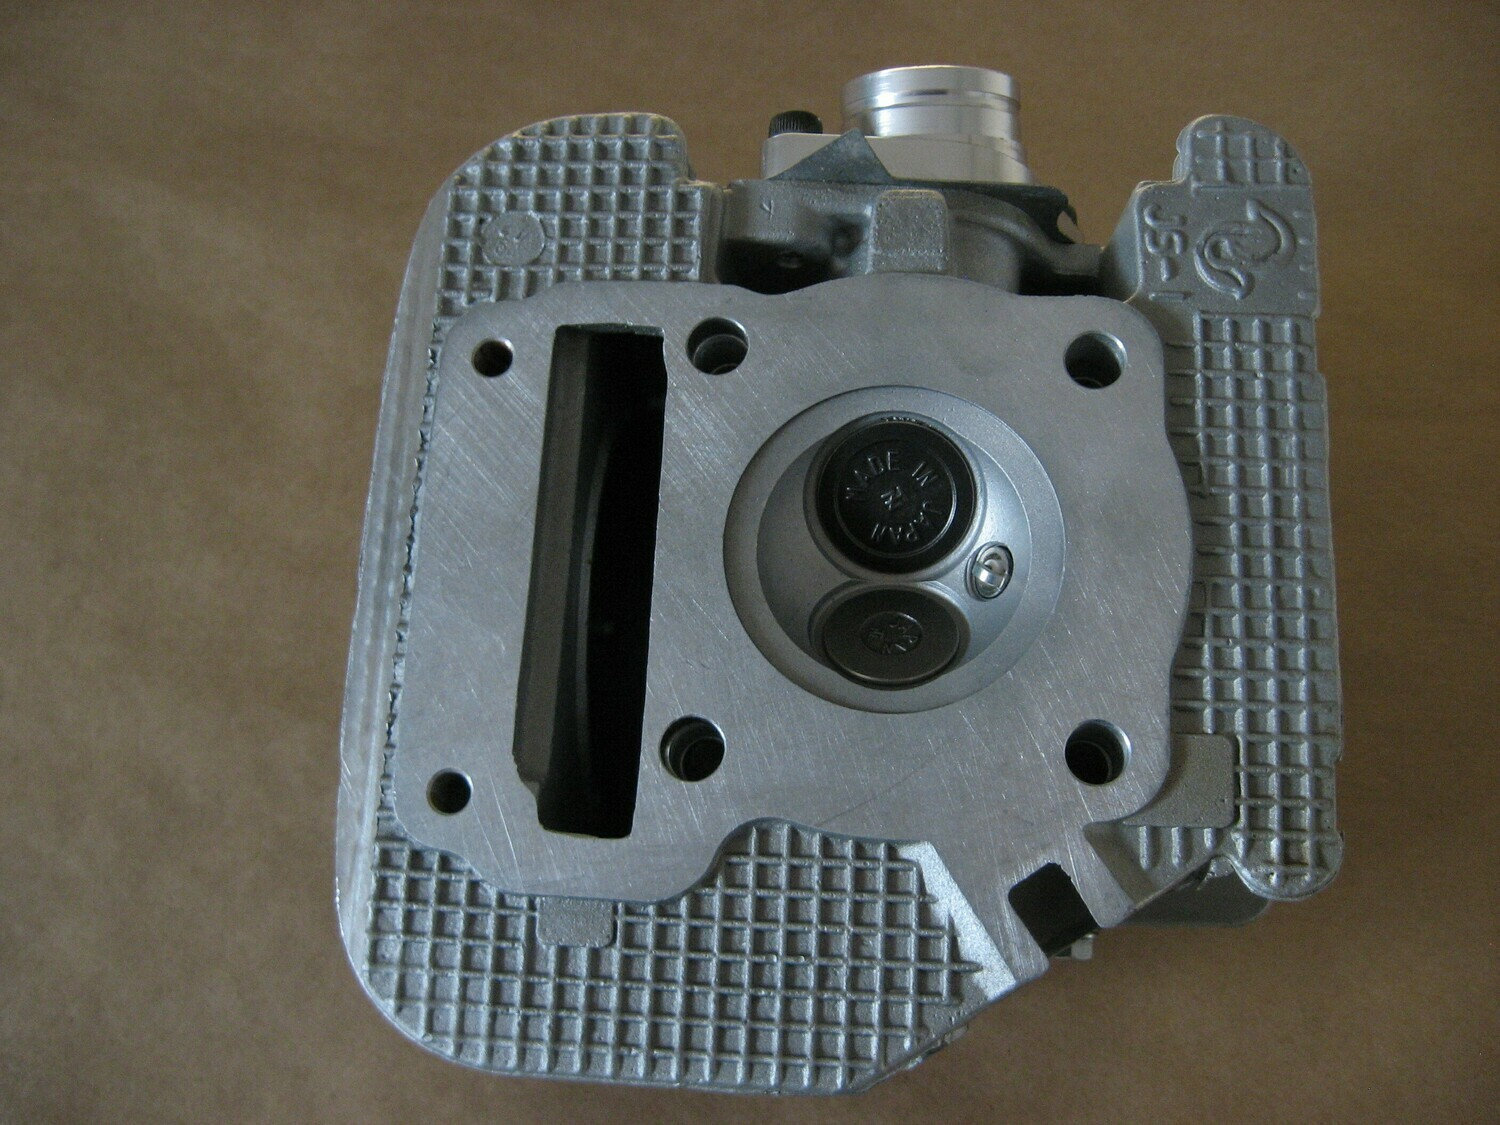 KAYO MiniGP MR125 - 150 Big Bore - Formula Head with Japanese Yamaha Parts, Ports and Casting Corrected - Final 2 - Then gone